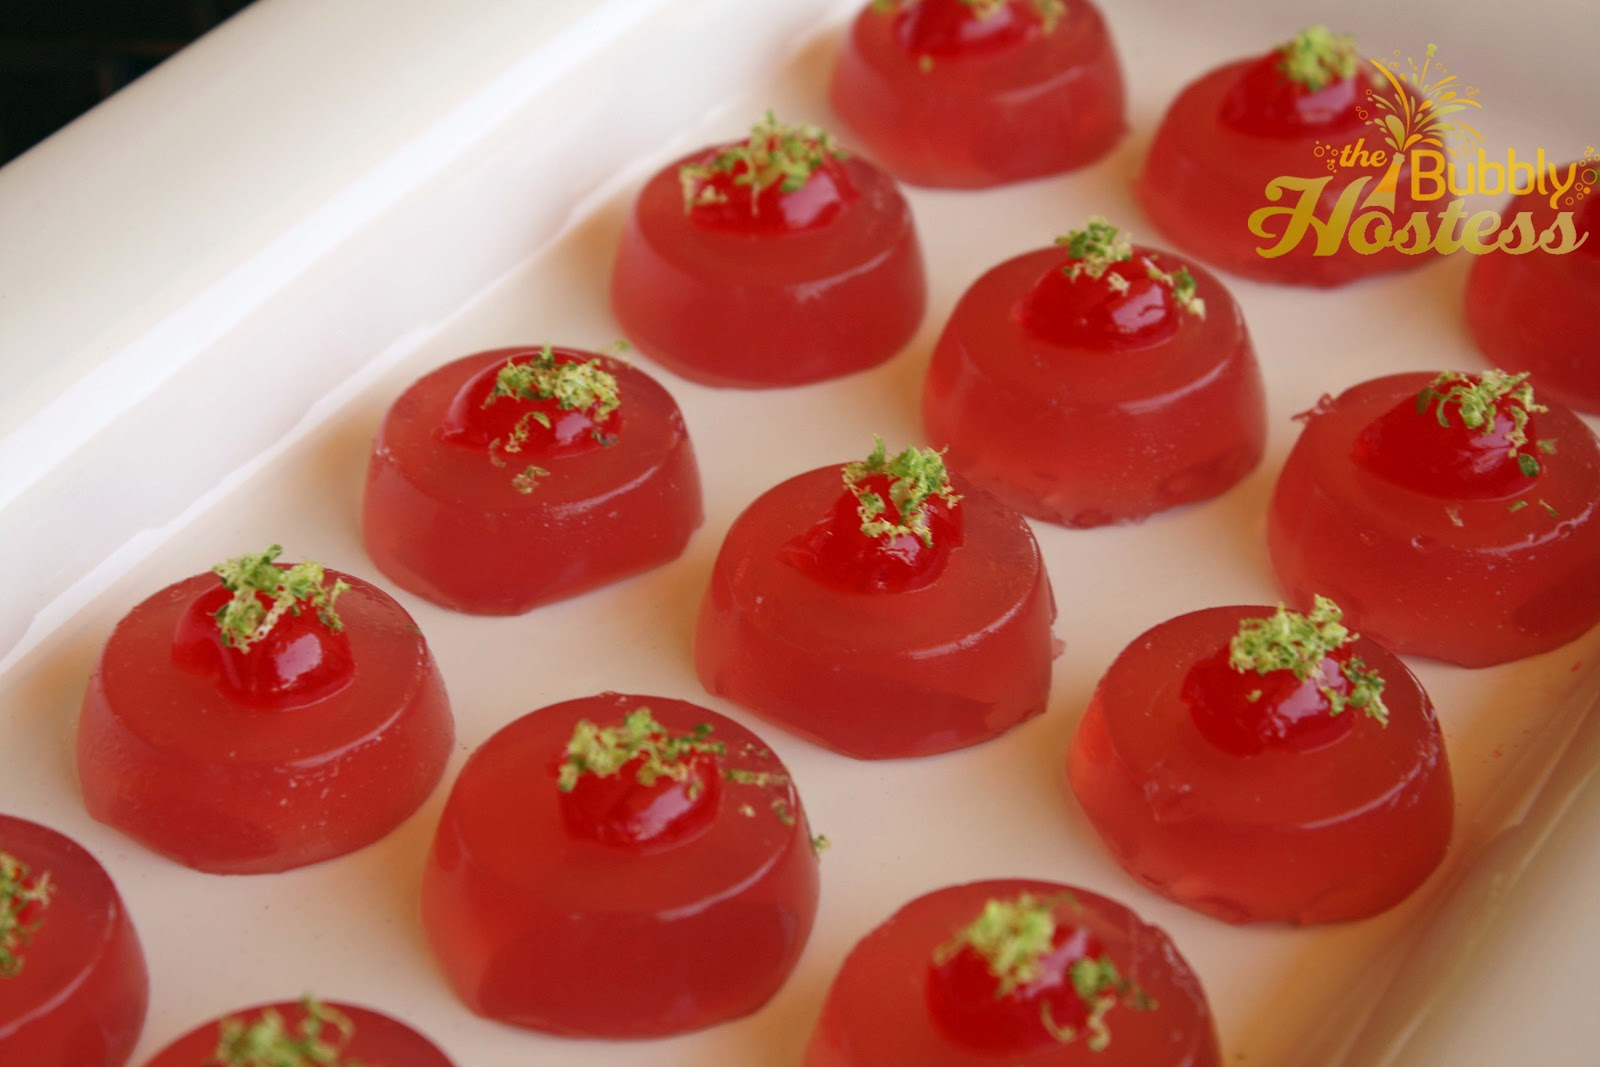 The Bubbly Hostess: Cosmopolitan Jello Shots